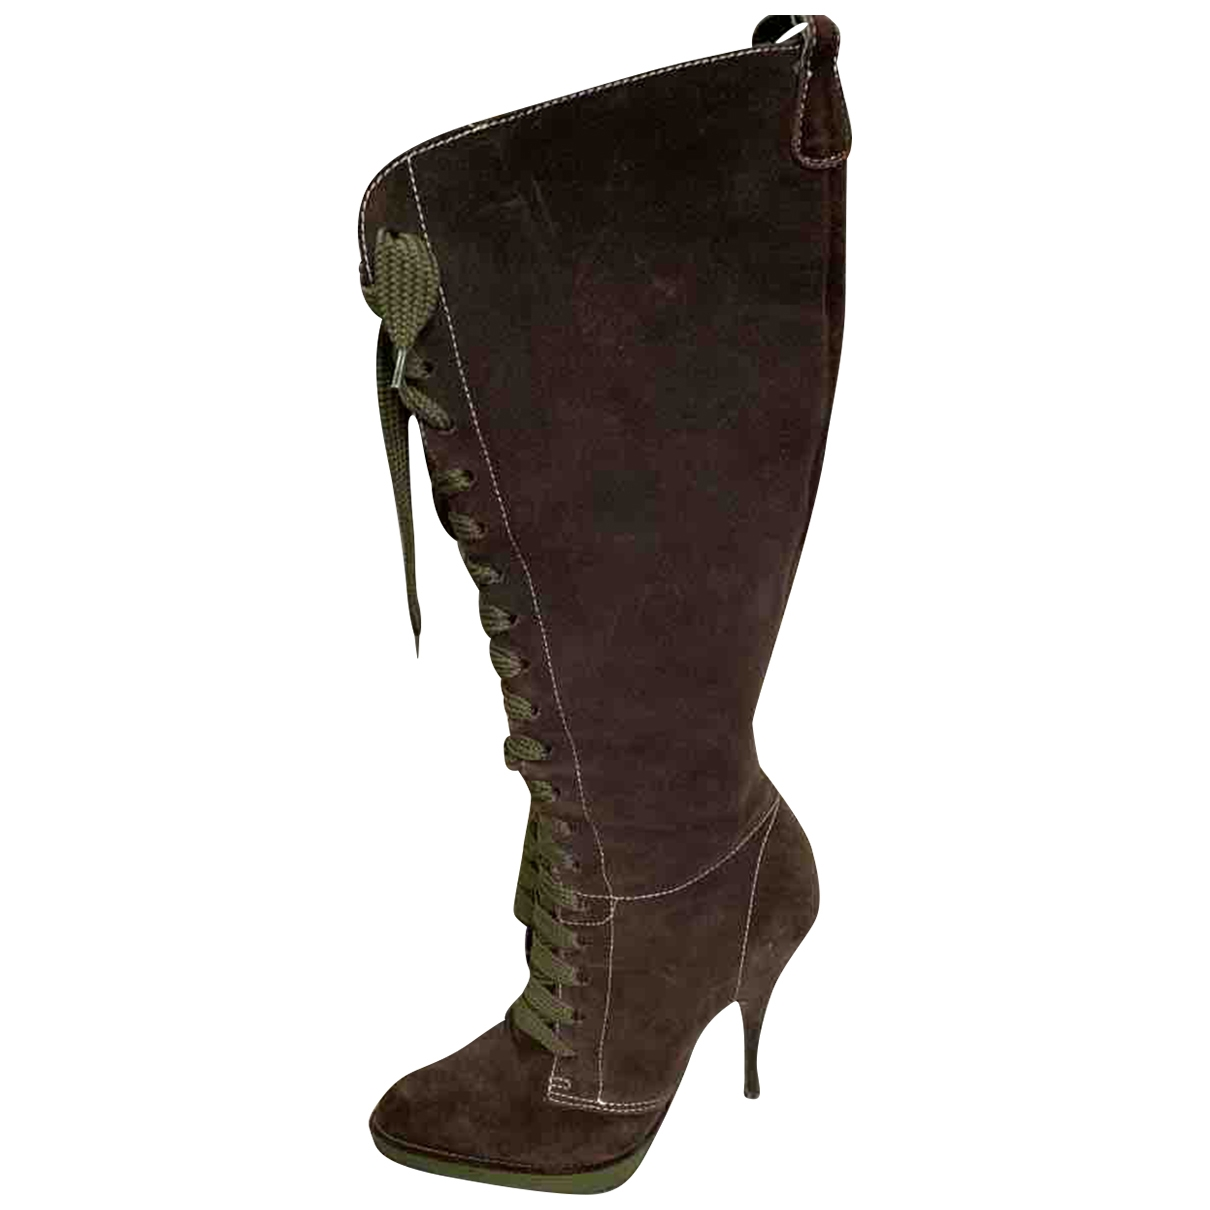 D&g \N Brown Suede Boots for Women 39 EU